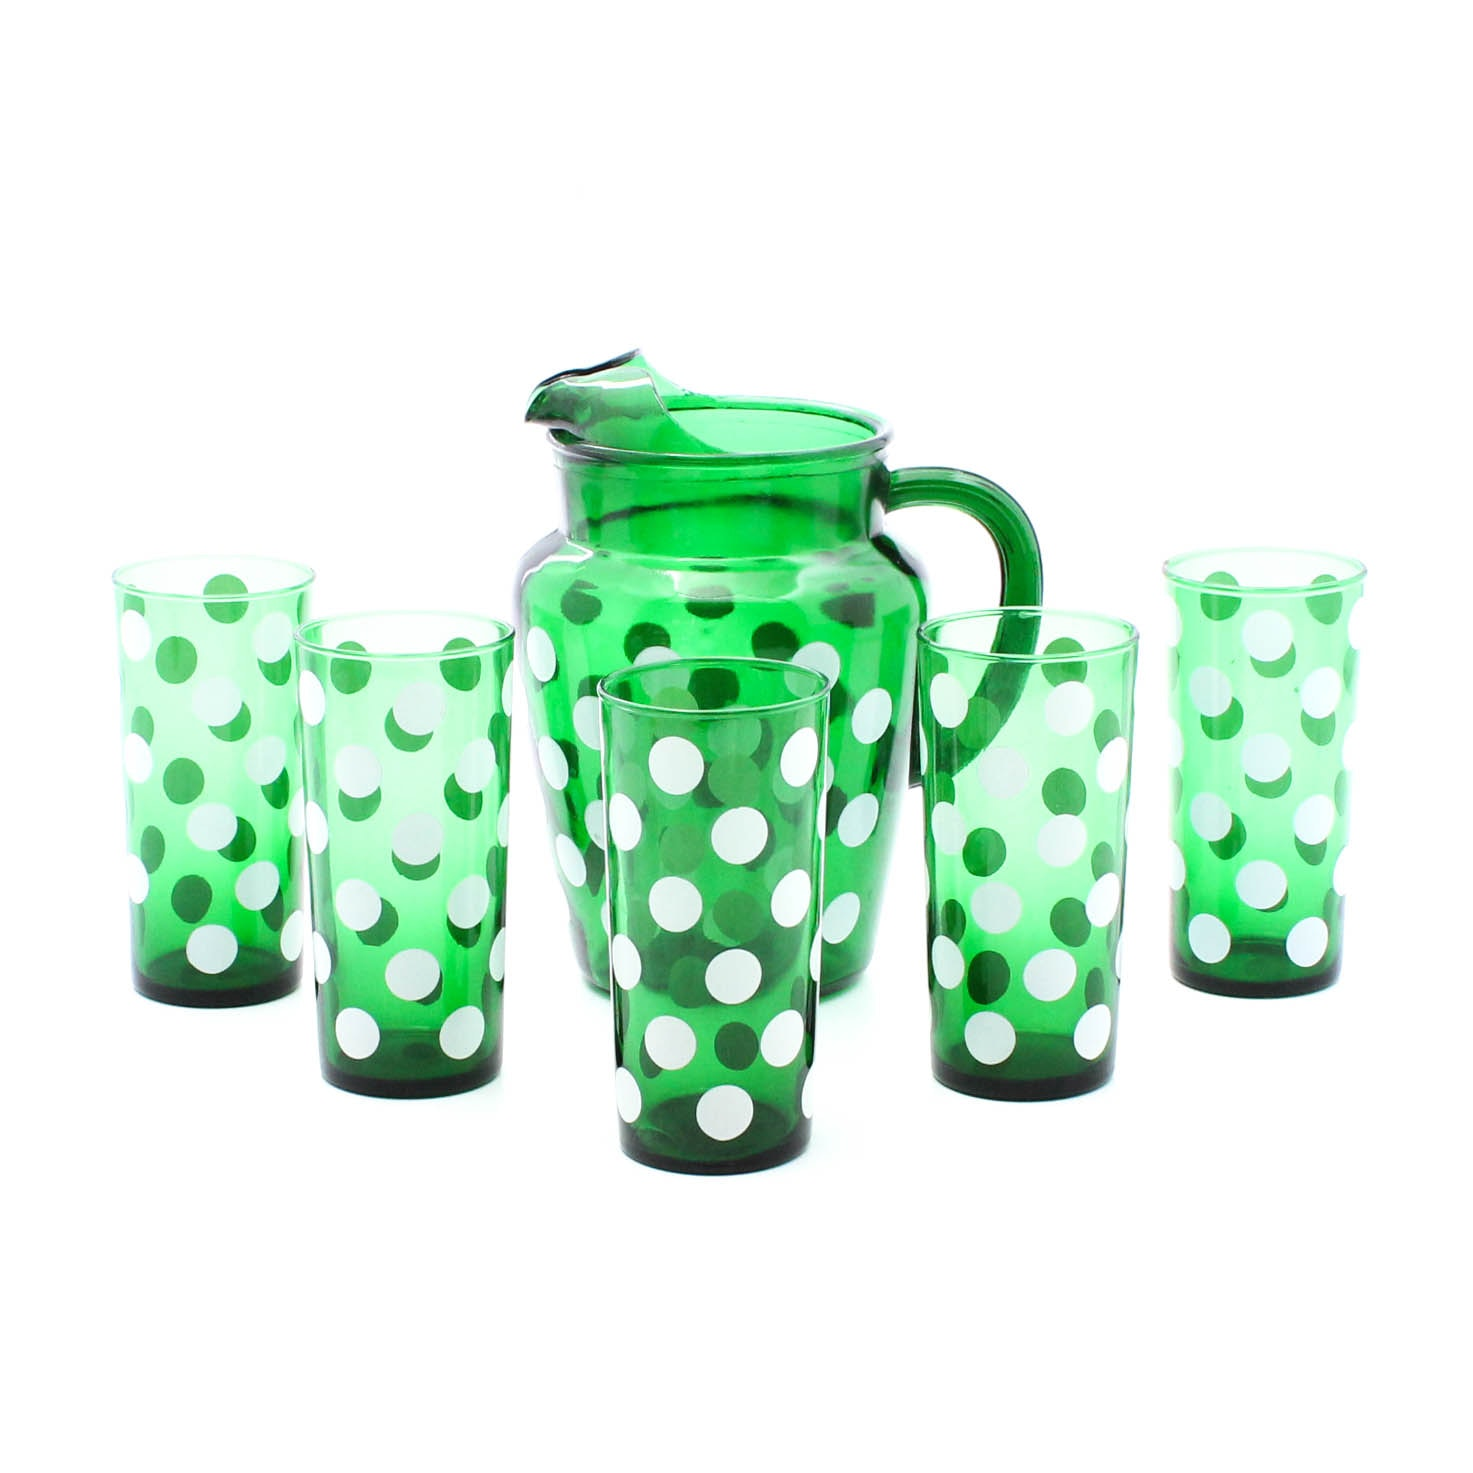 Green Polka Dot Anchor Hocking Glass Pitcher and Tumblers